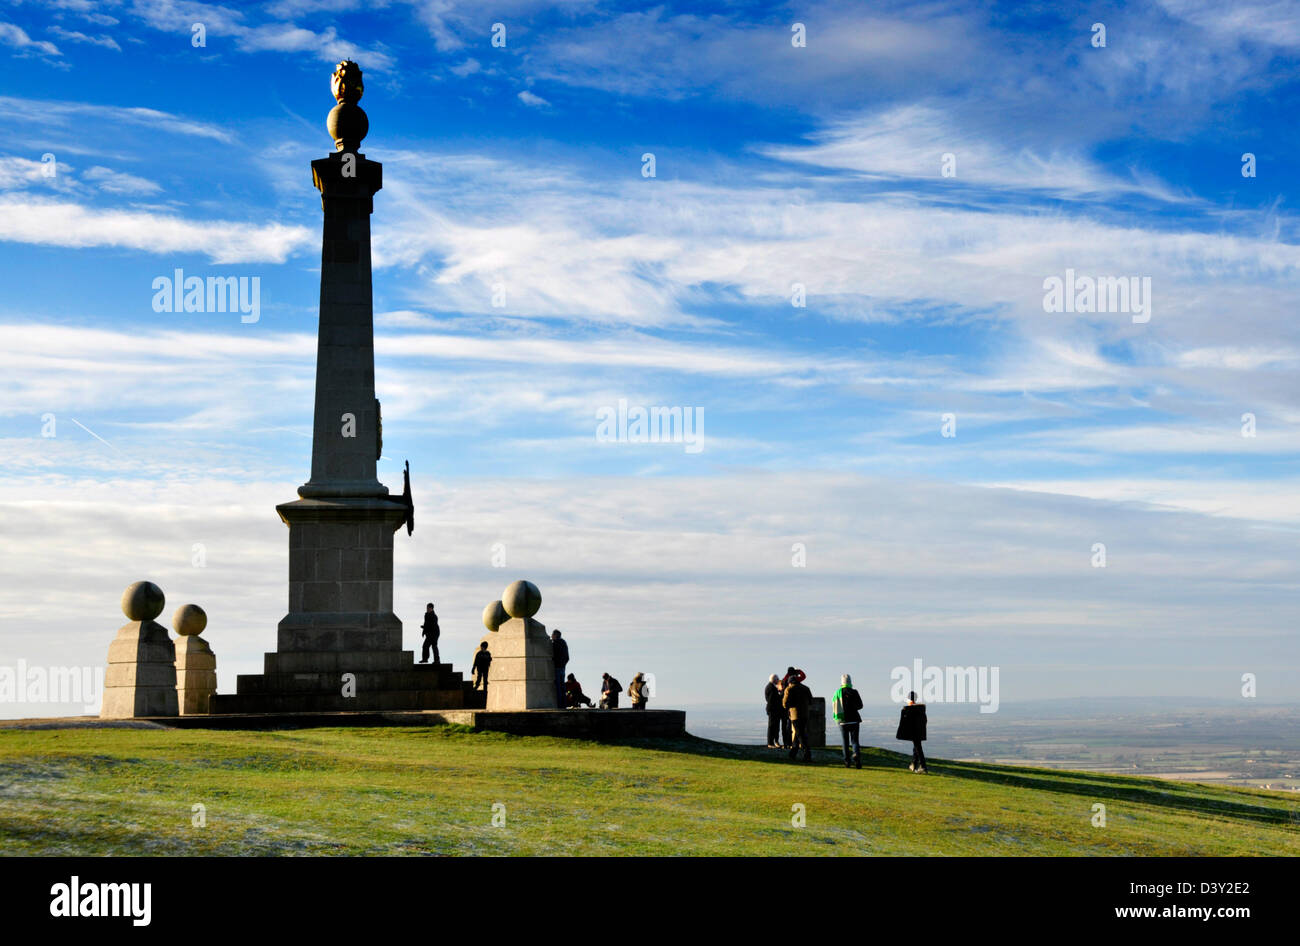 Bucks Chiltern Hills -monument on Coombe Hill - viewpoint over Aylesbury Plain -  visitors taking in the view - - Stock Image